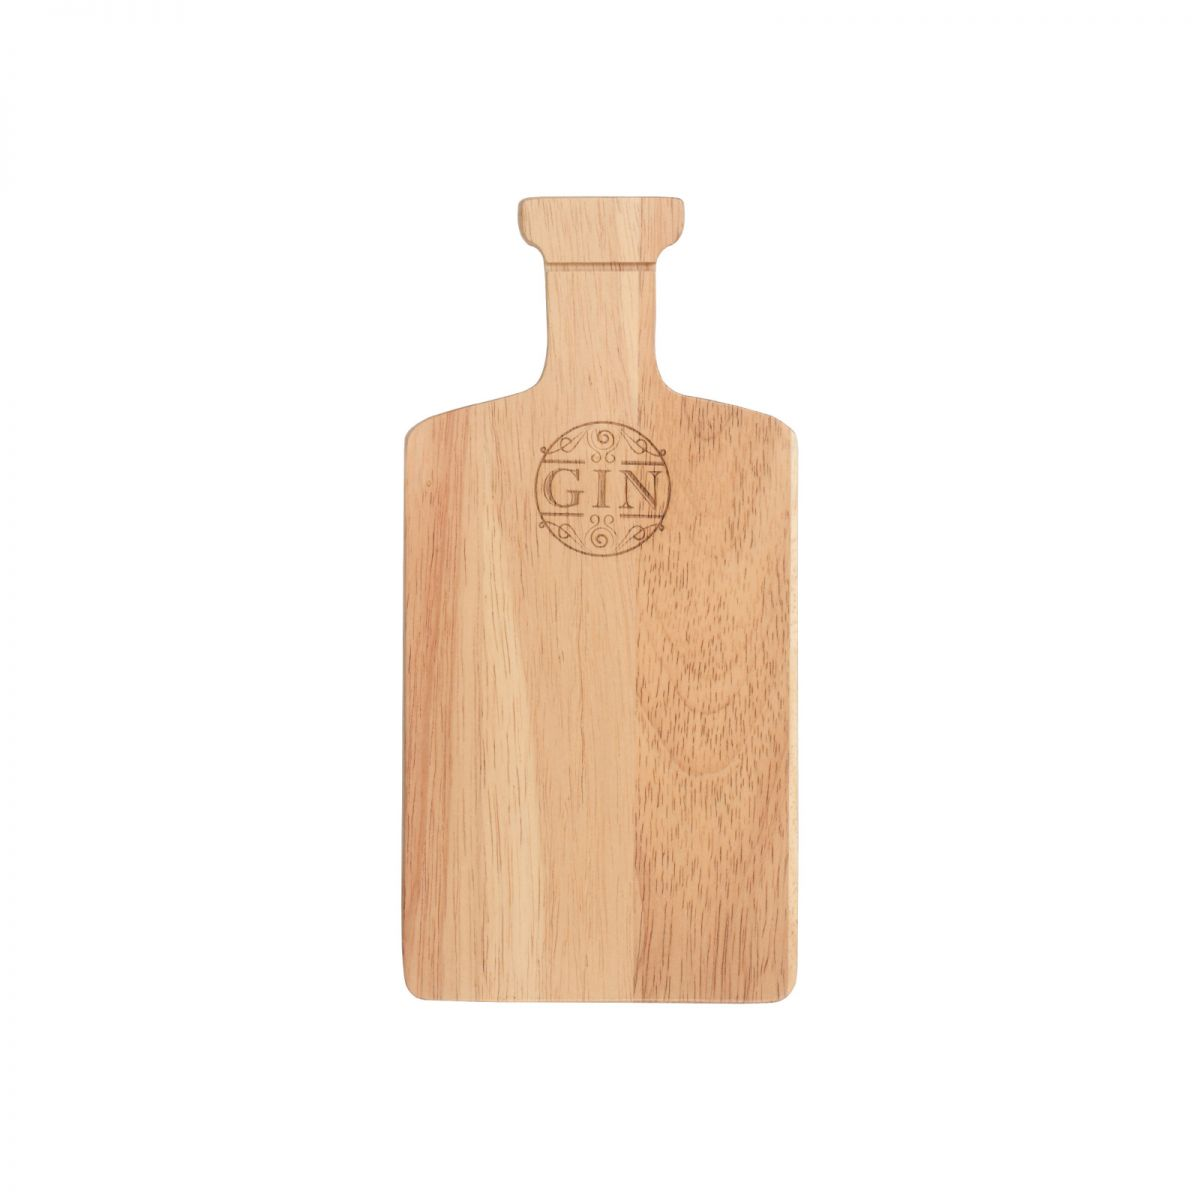 Gin Bar Prep Board - T&G Woodware